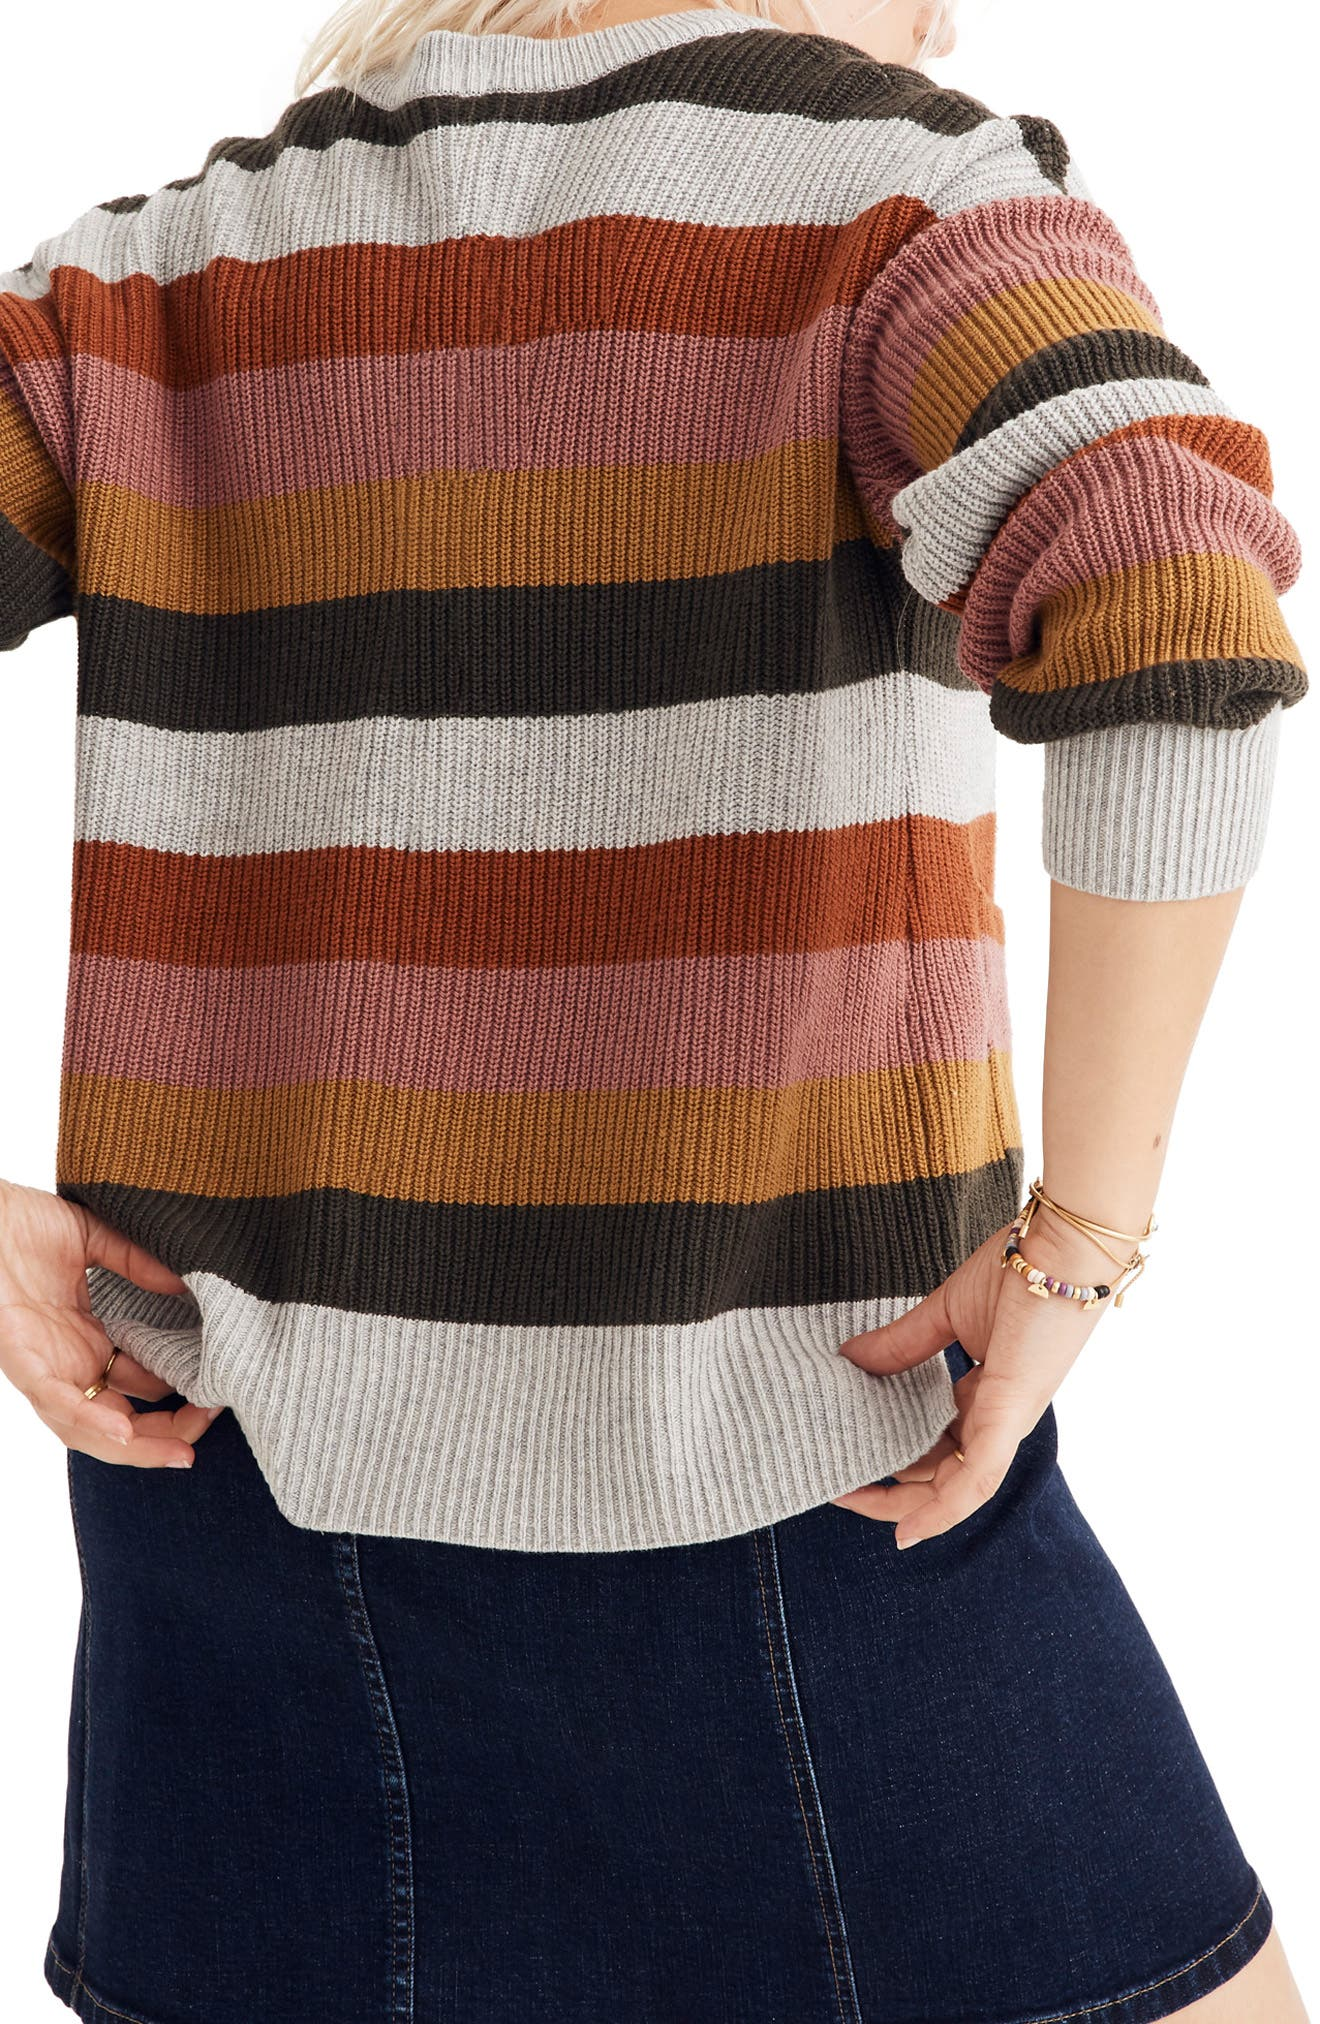 Patch Pocket Pullover Sweater,                             Alternate thumbnail 3, color,                             900